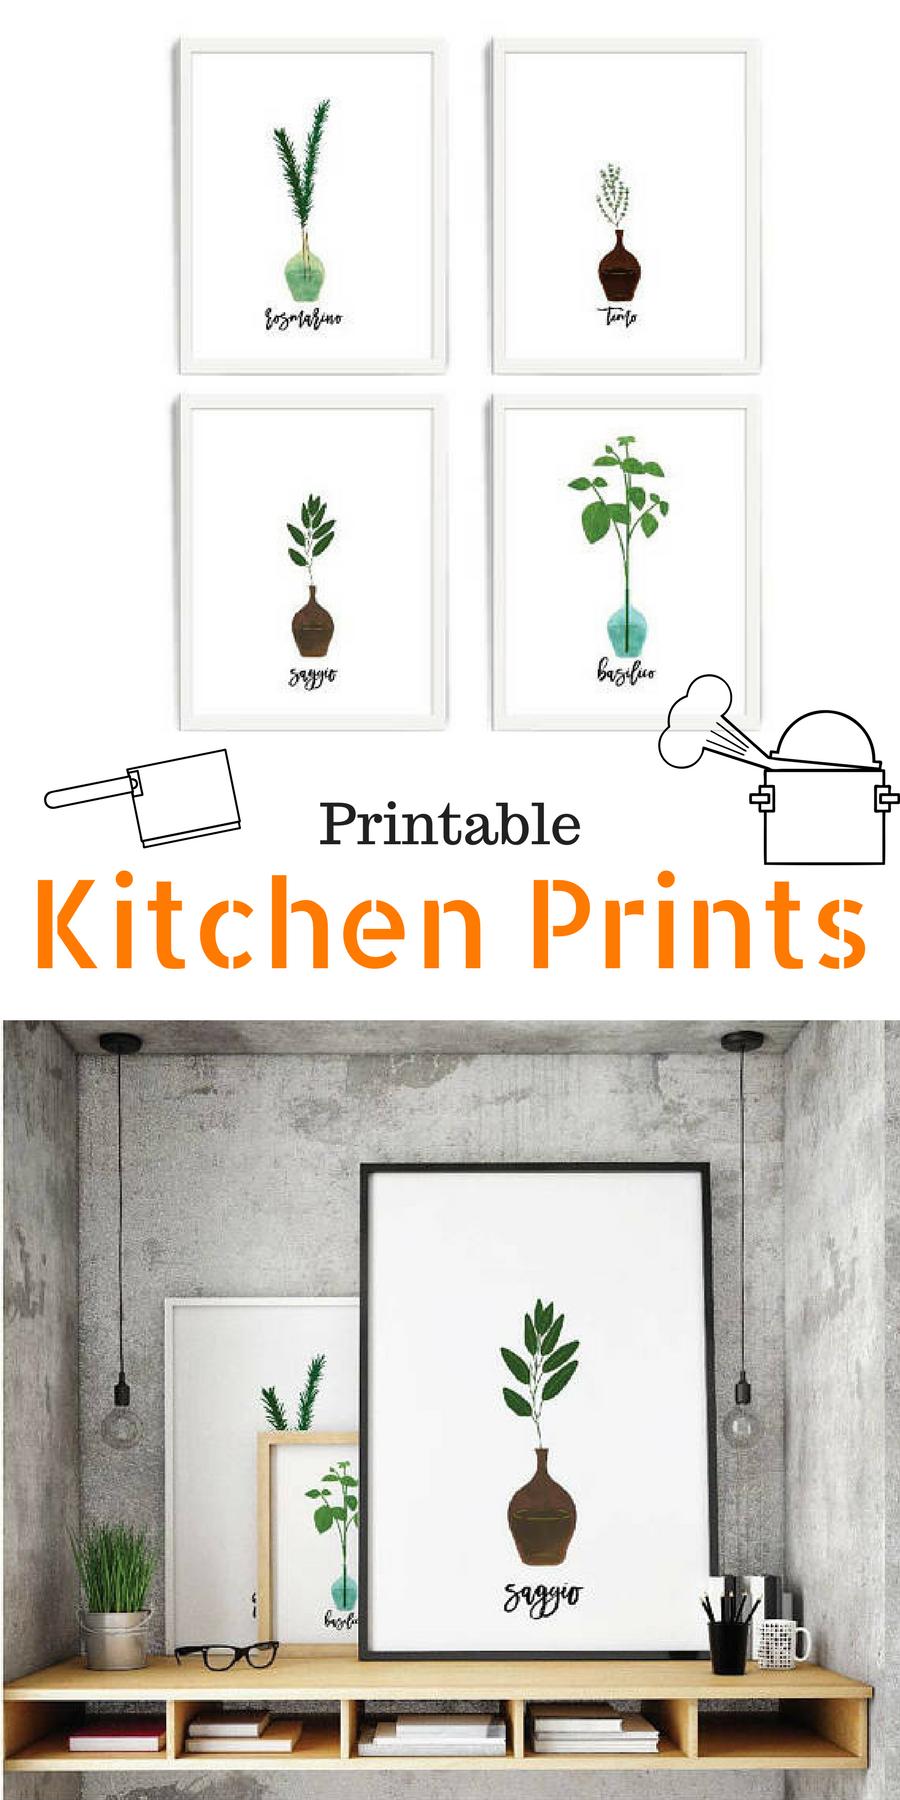 Cool minimalistic printable kitchen prints with Italian herbs. I ...